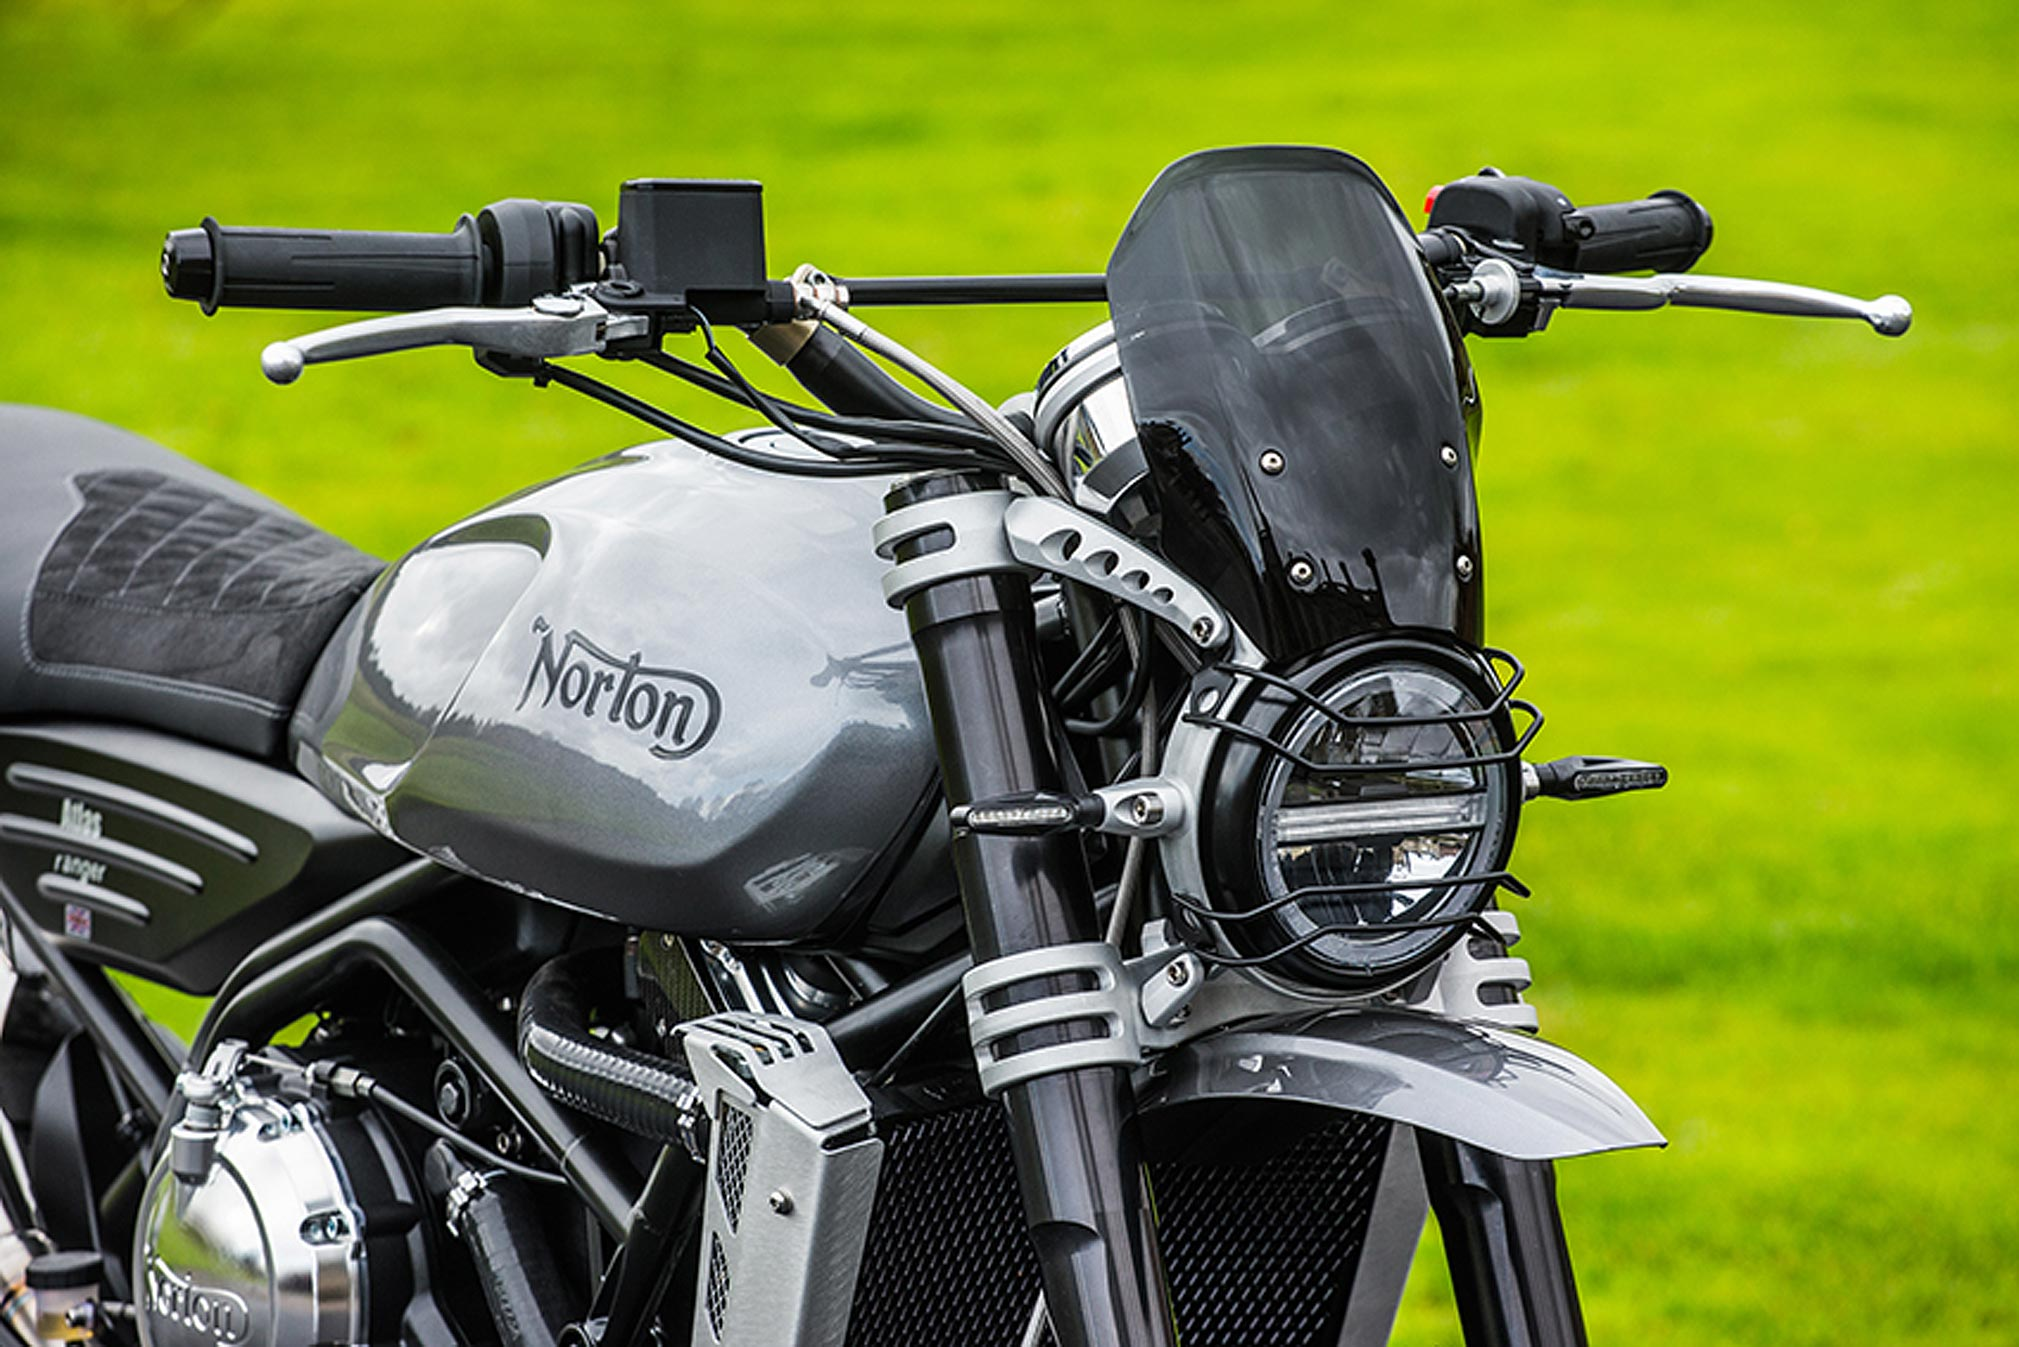 2019 Norton Atlas Ranger Guide Total Motorcycle